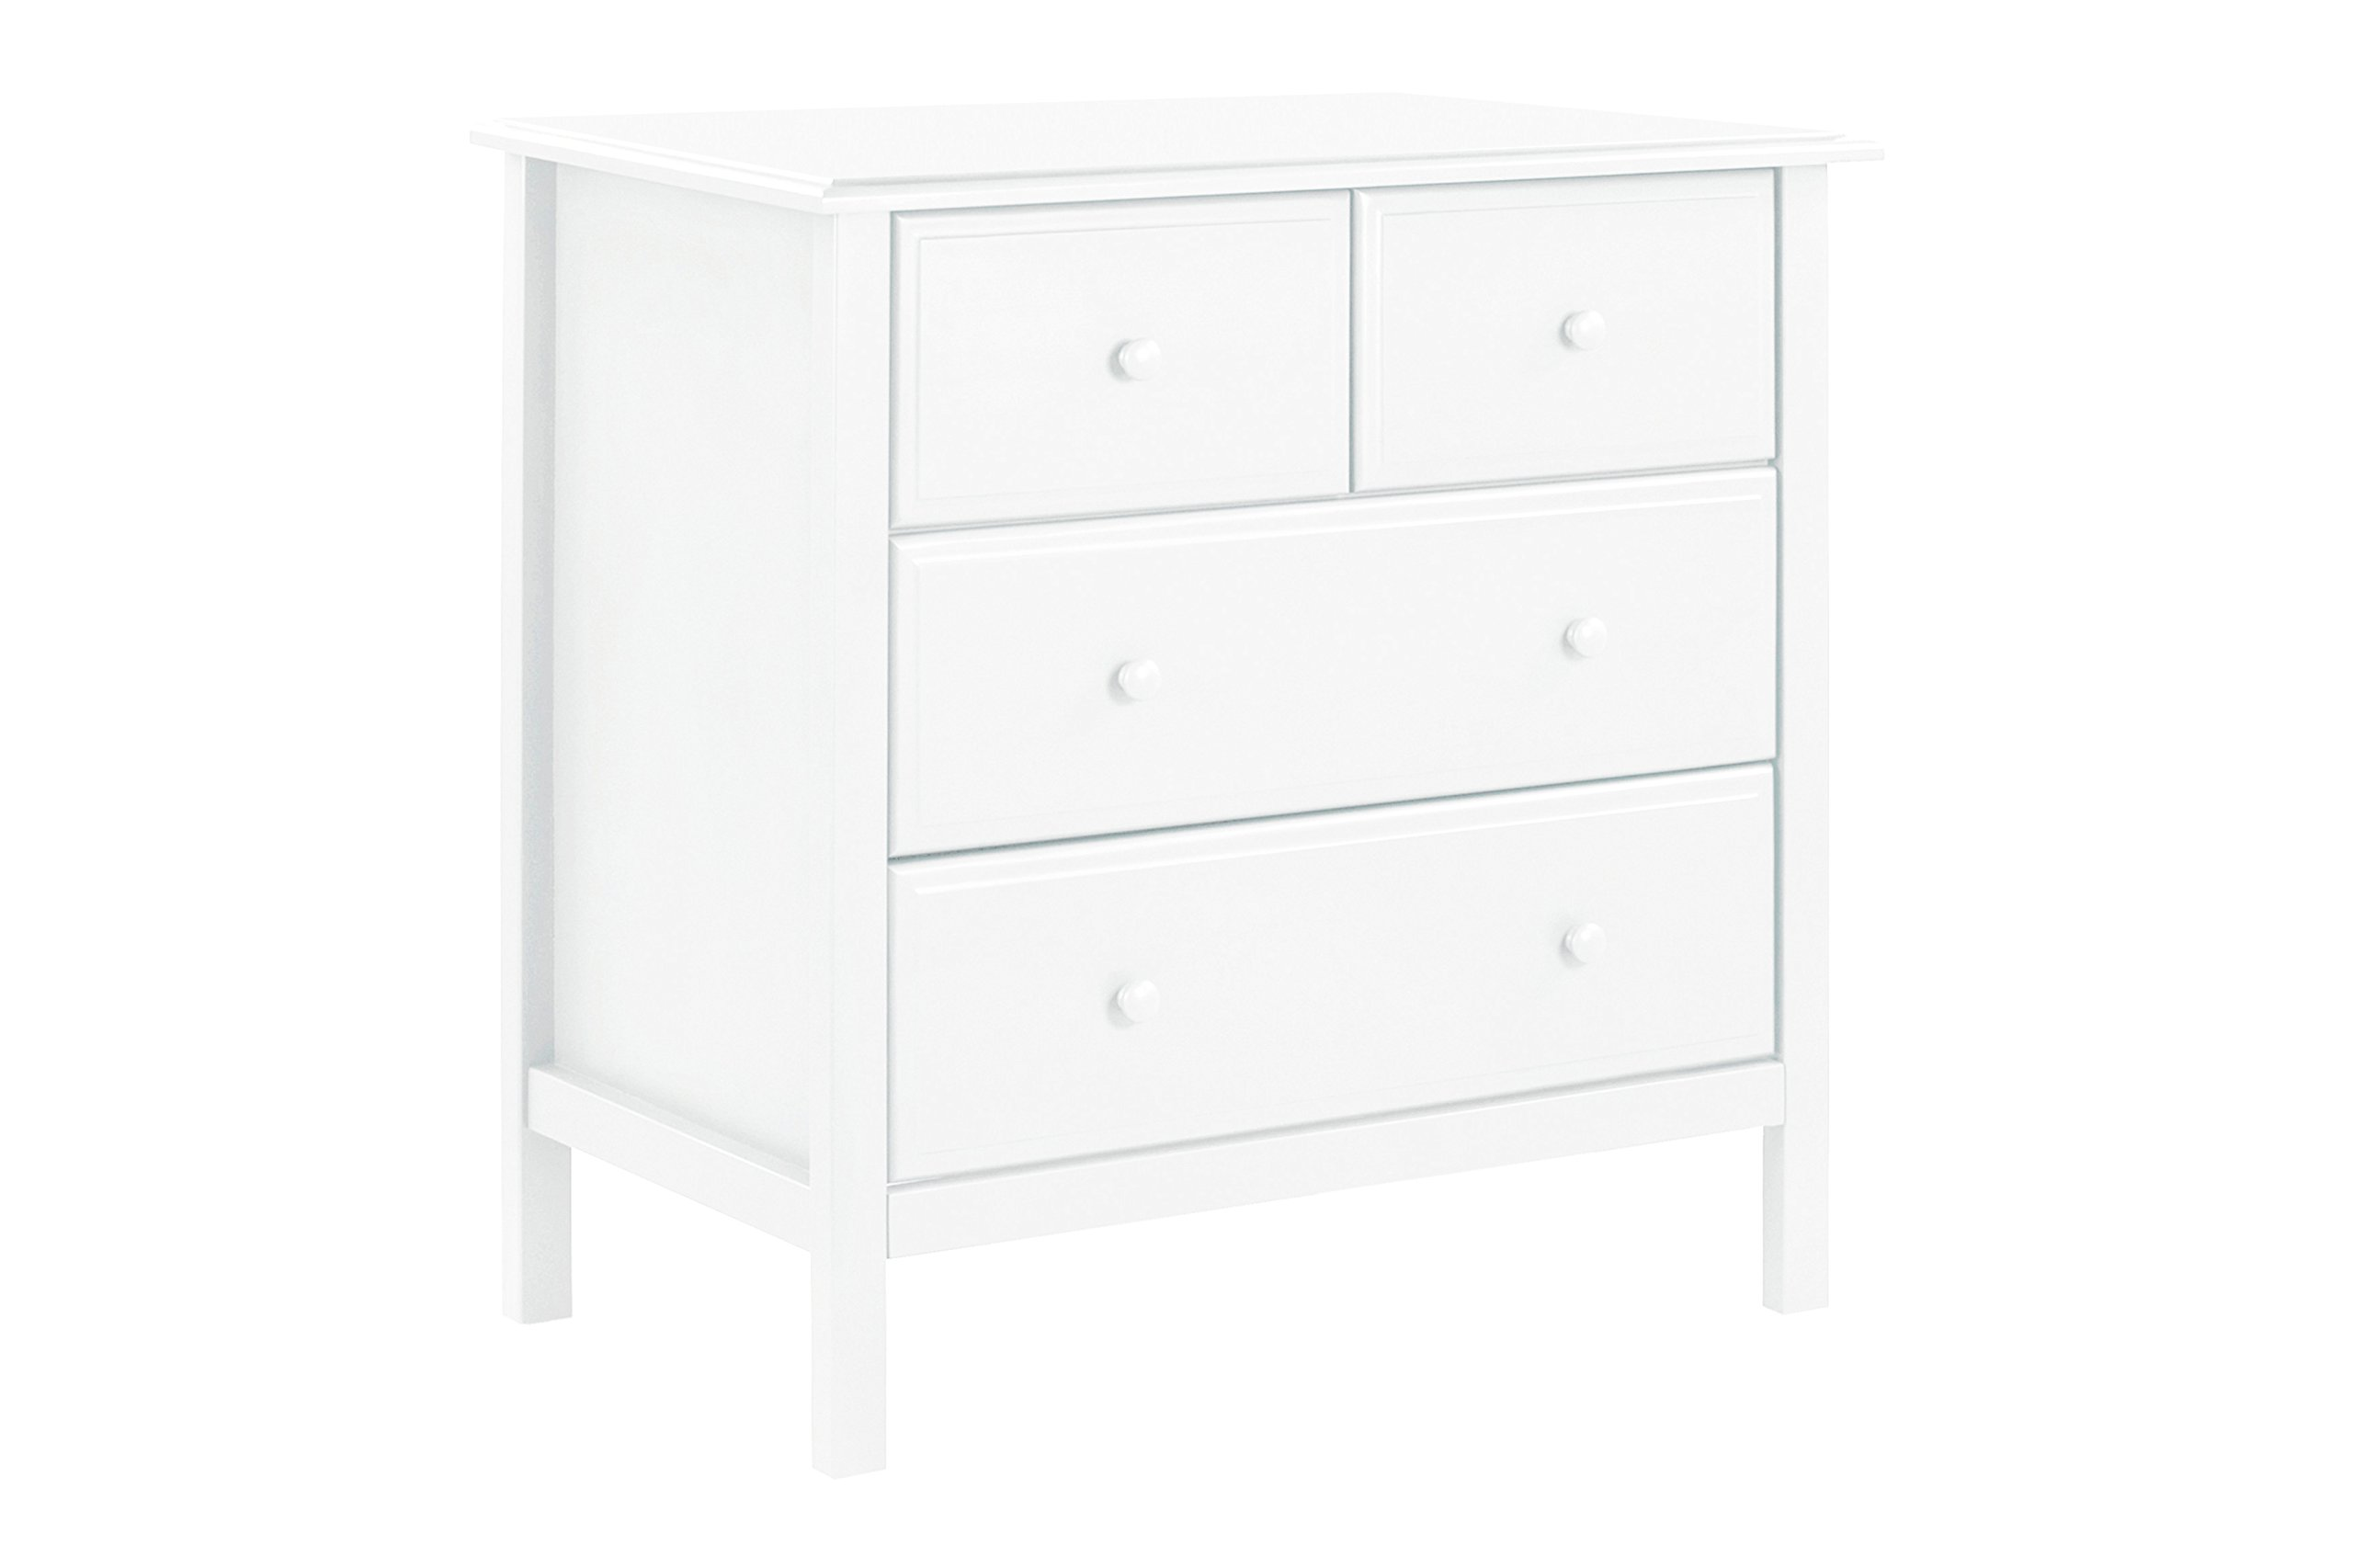 DaVinci Autumn 4-Drawer Changer Dresser with Removable Changing Tray, White